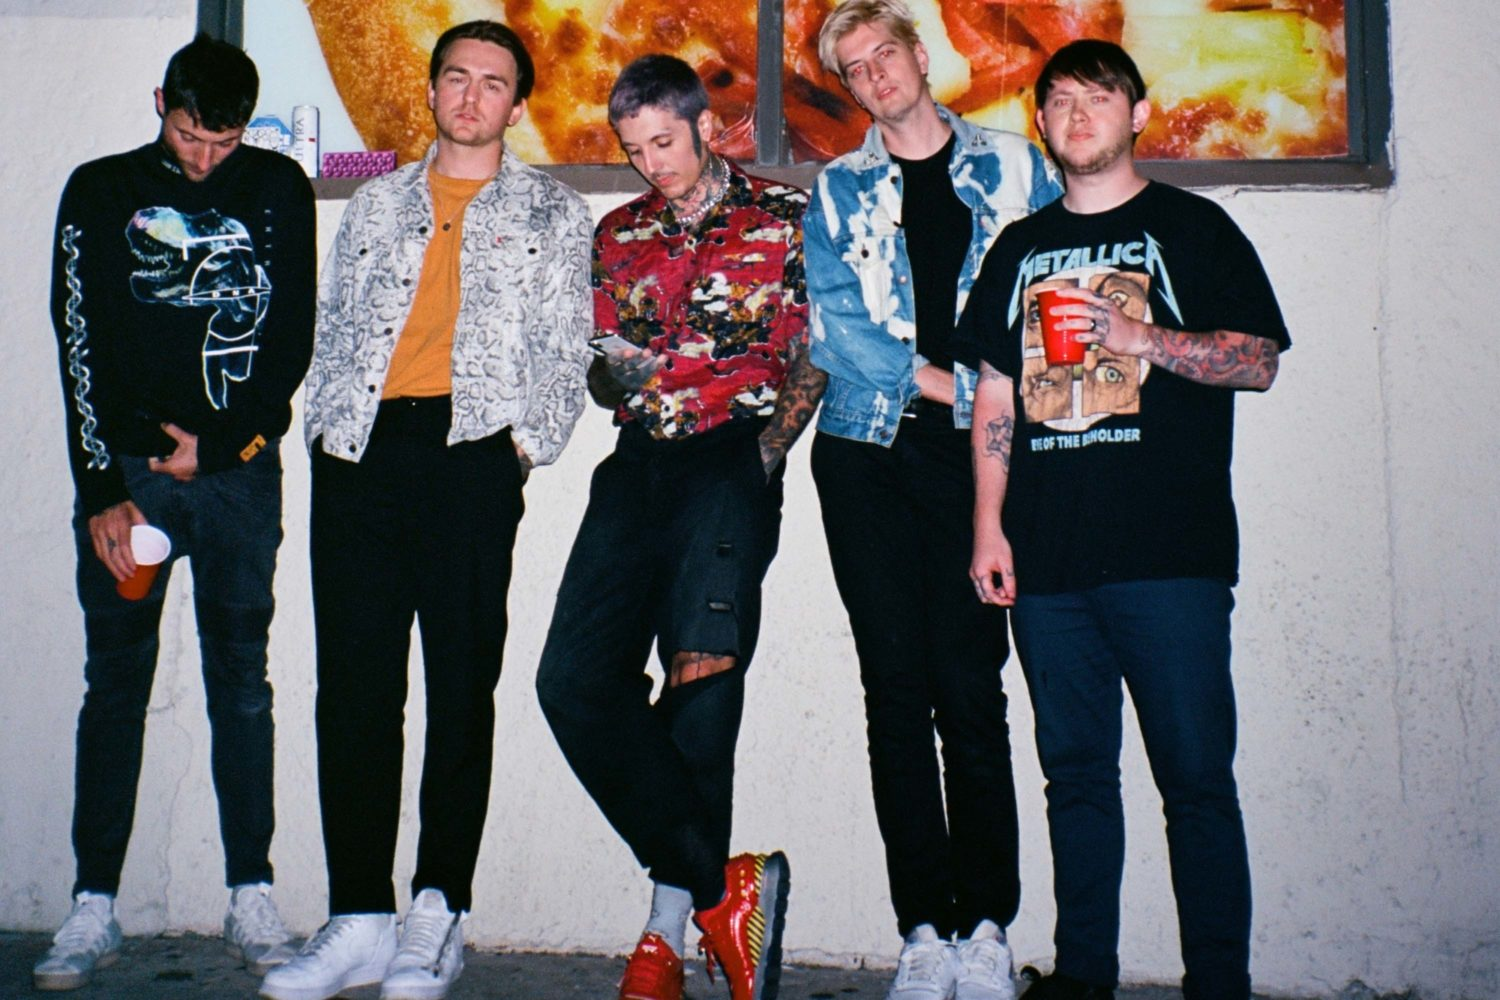 Bring Me The Horizon share new song 'Wonderful Life' featuring Dani Filth